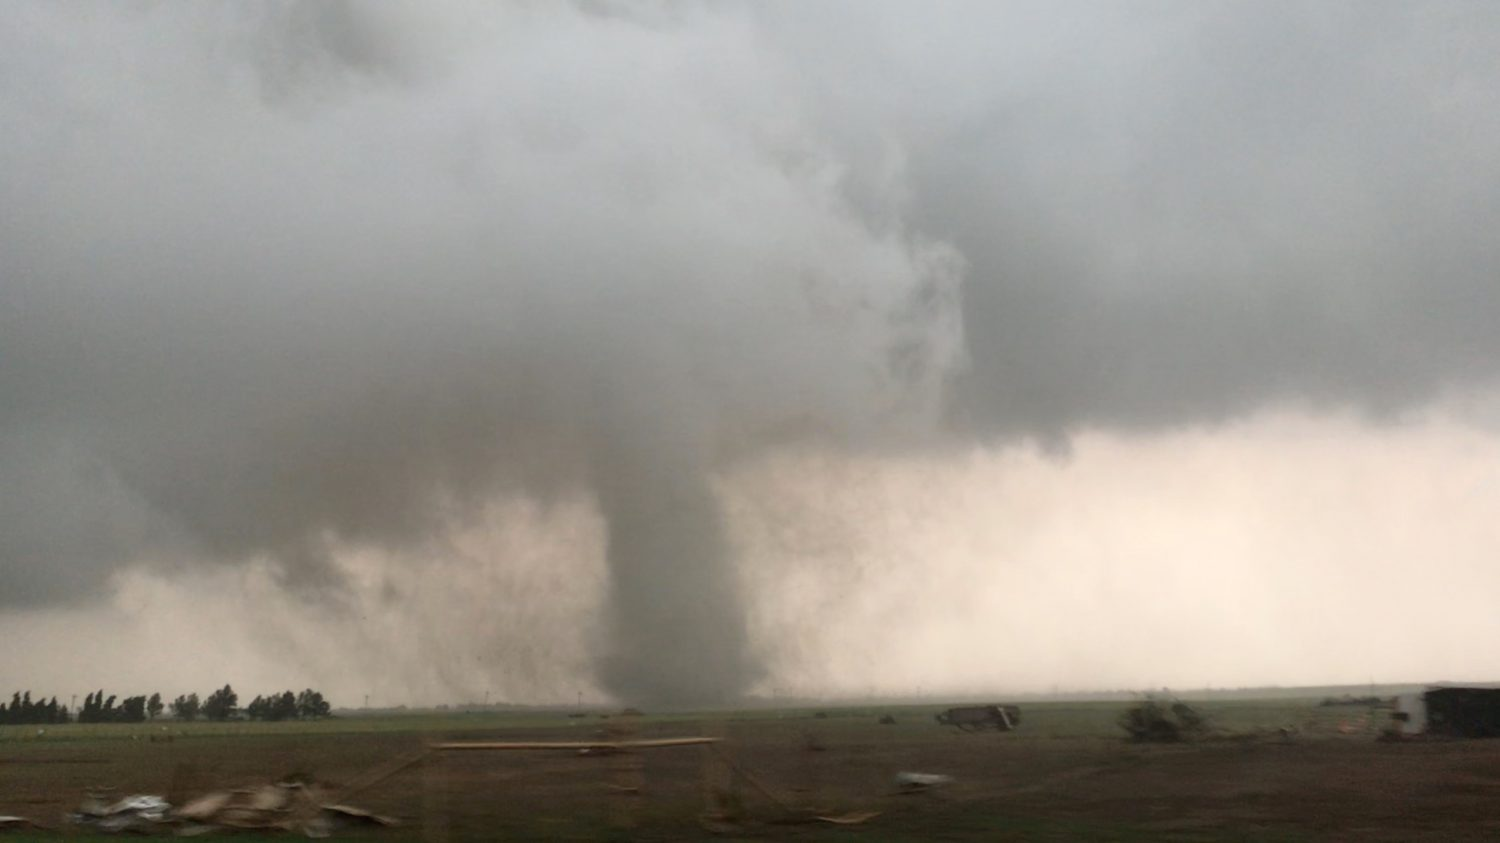 A tornado spins during stormy weather in Mangum, Oklahoma, U.S., May 20, 2019, in this still image taken from video from social media. Lorraine Matti via REUTERS